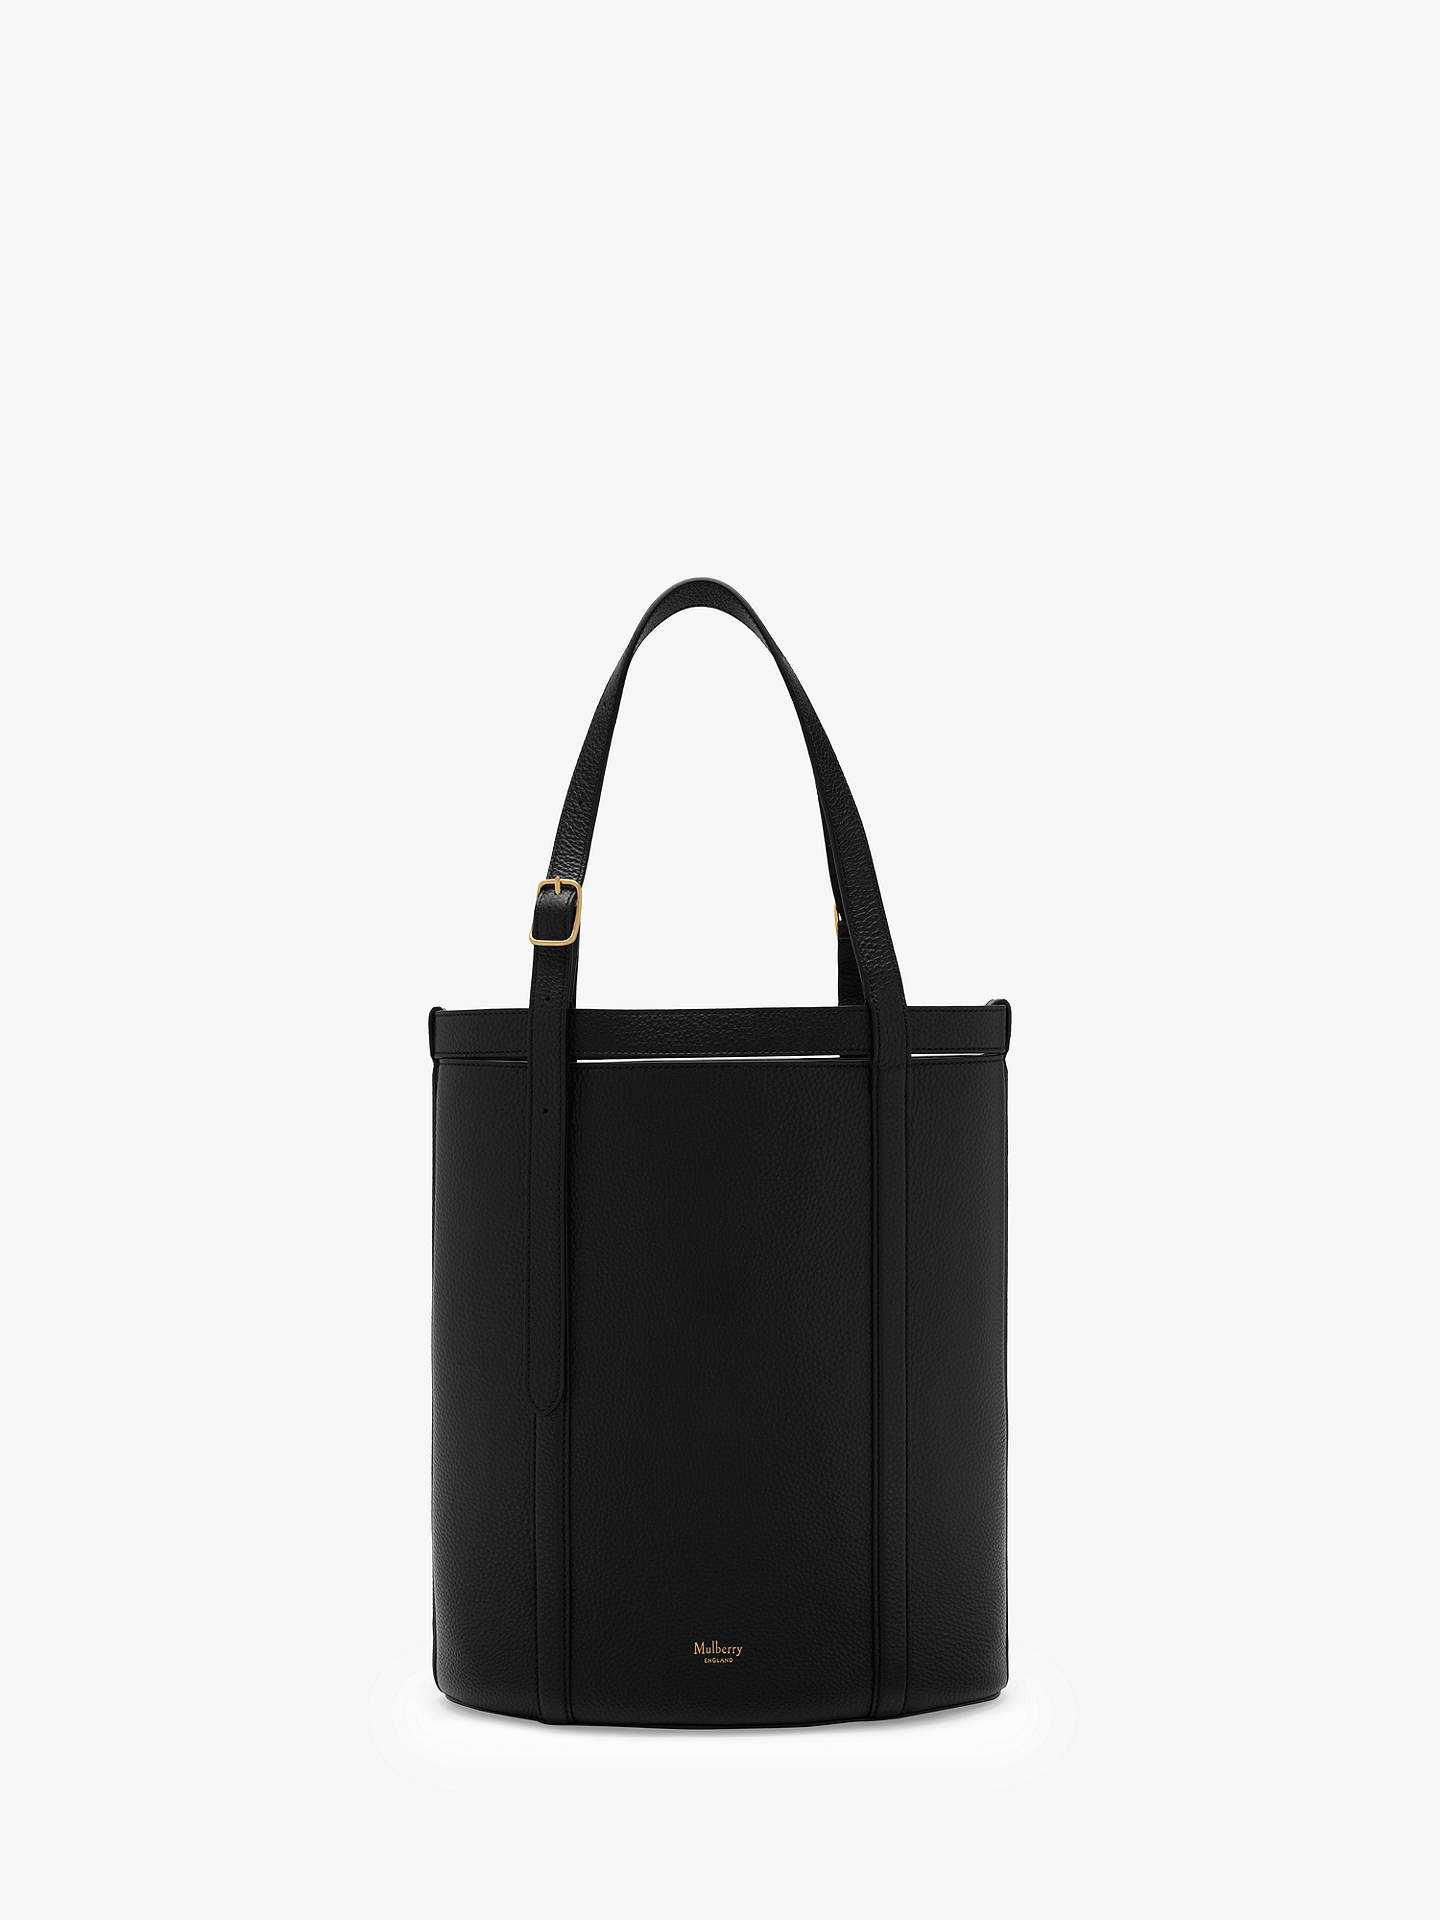 ... usa buymulberry small wilton classic grain leather bucket tote bag  black online at johnlewis 18f57 f38eb 5b539ac643c9f